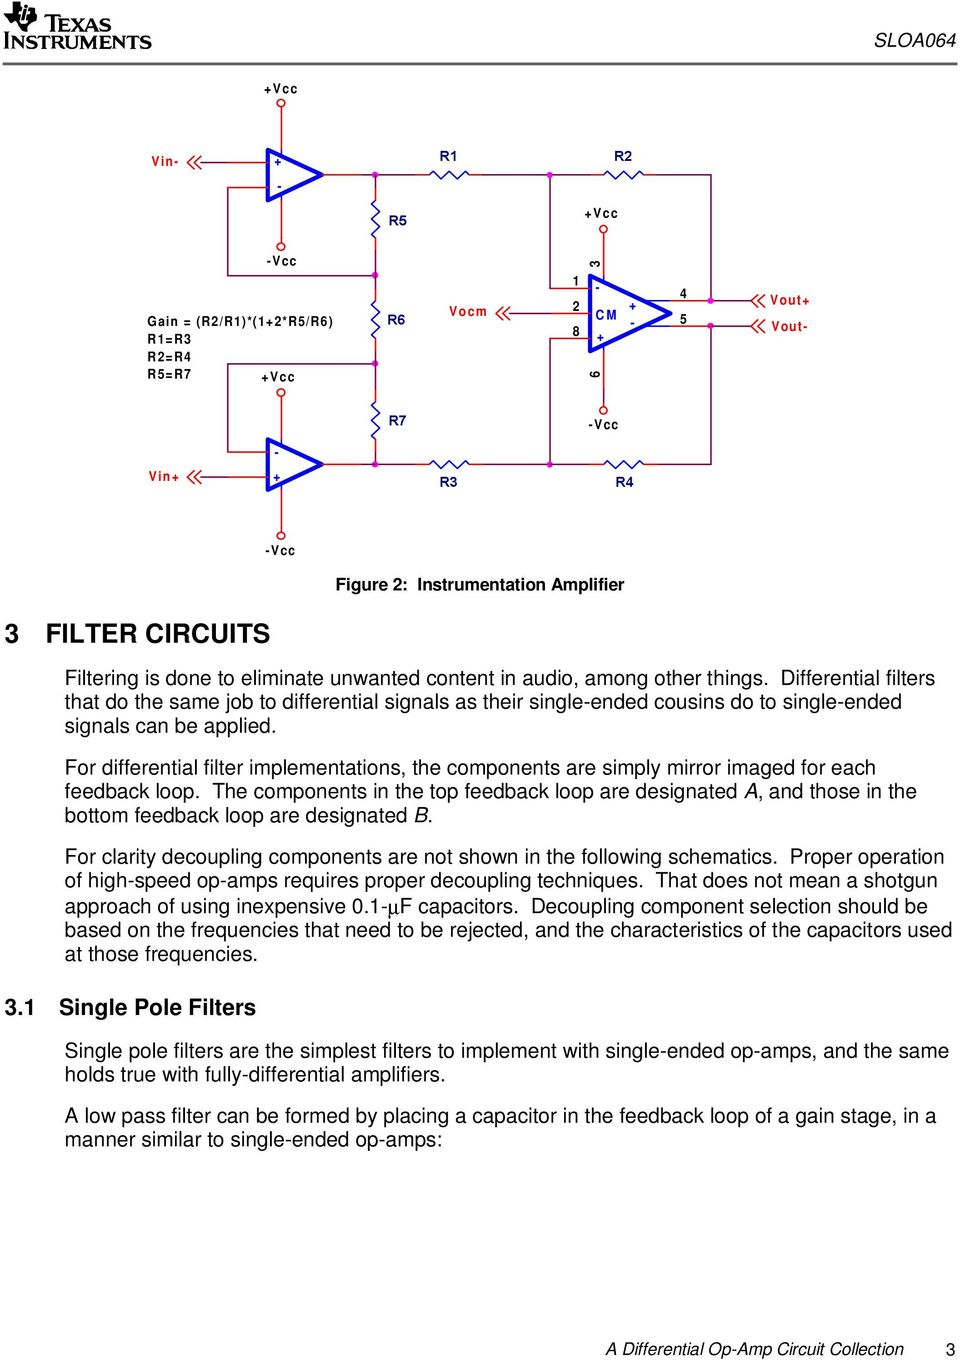 A Differential Op Amp Circuit Collection Pdf Low Pass Filter Integrator Using 741 Electronics Opamp For Implementations The Components Are Simply Mirror Imaged Each Feedback Loop